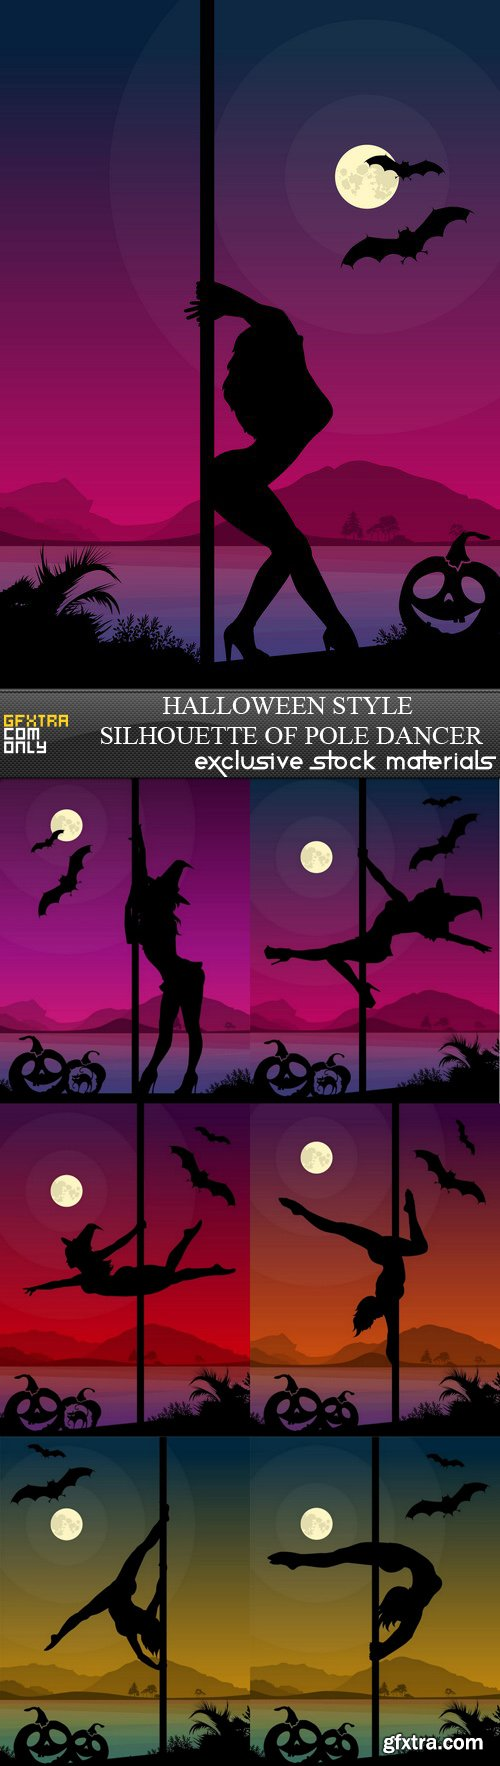 Halloween Style Silhouette of Pole Dancer - 7xEPS&Ai